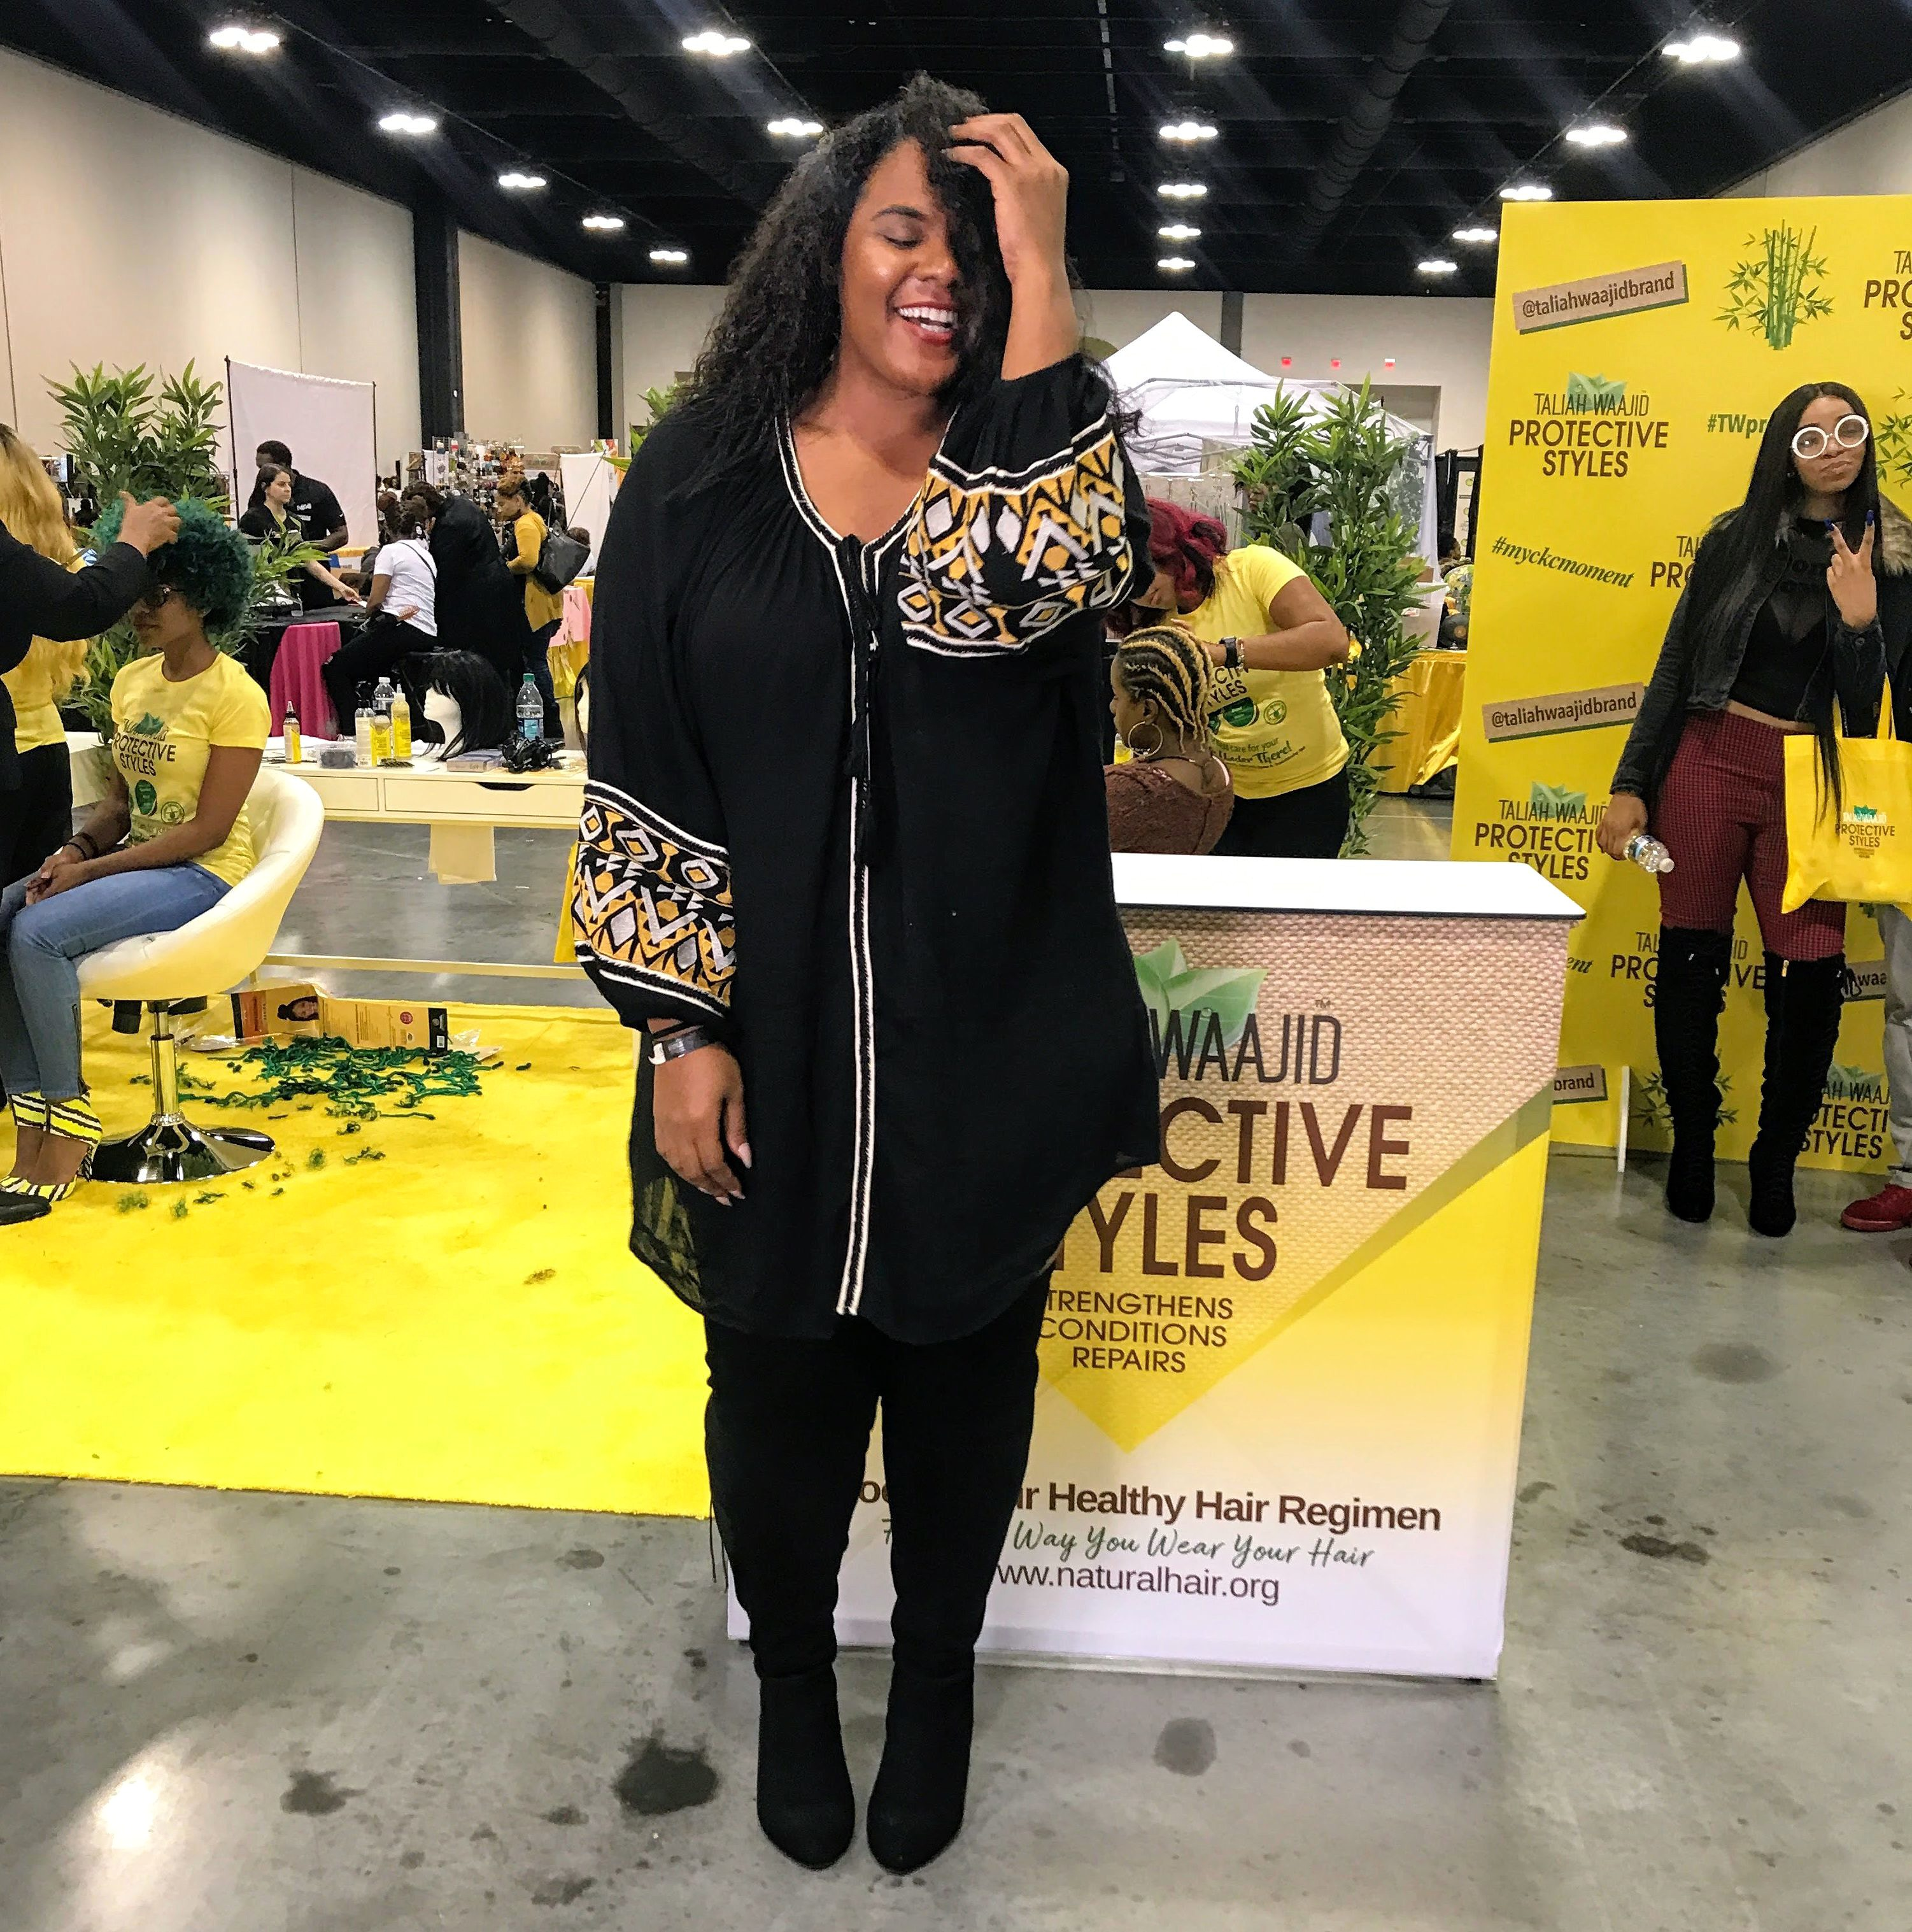 #SOHcialite: My Experience at Taliah Waajid Curls, Kinks, &  Culture Pop-Up Festival graphic